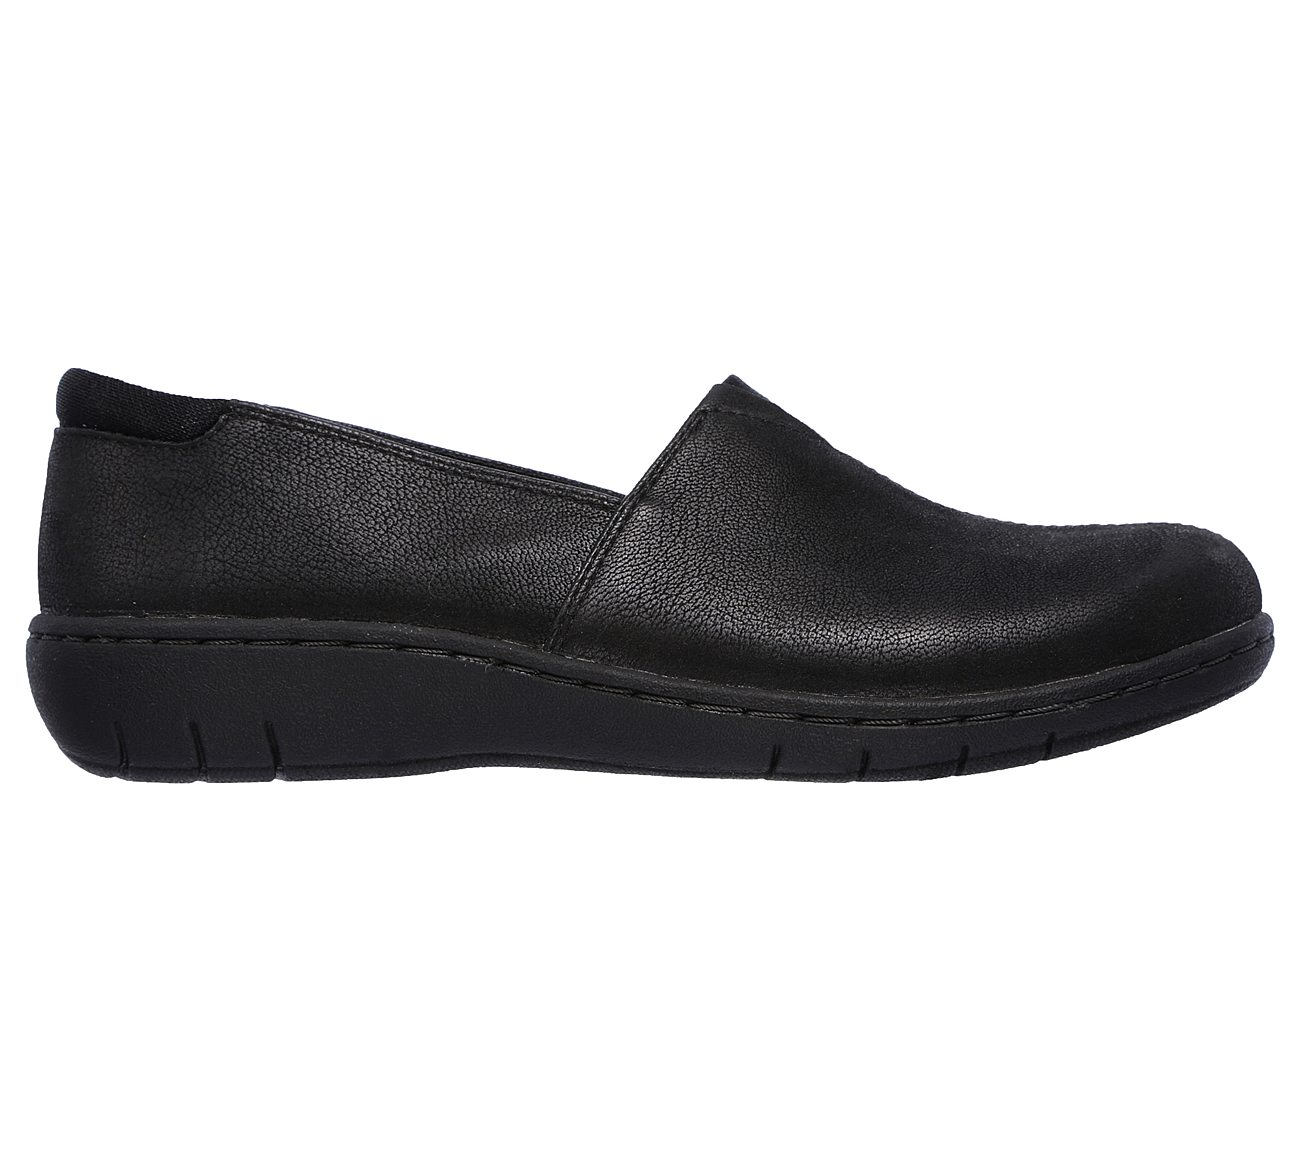 393817688fbf Buy SKECHERS Relaxed Fit  Washington - Tacoma Modern Comfort Shoes ...